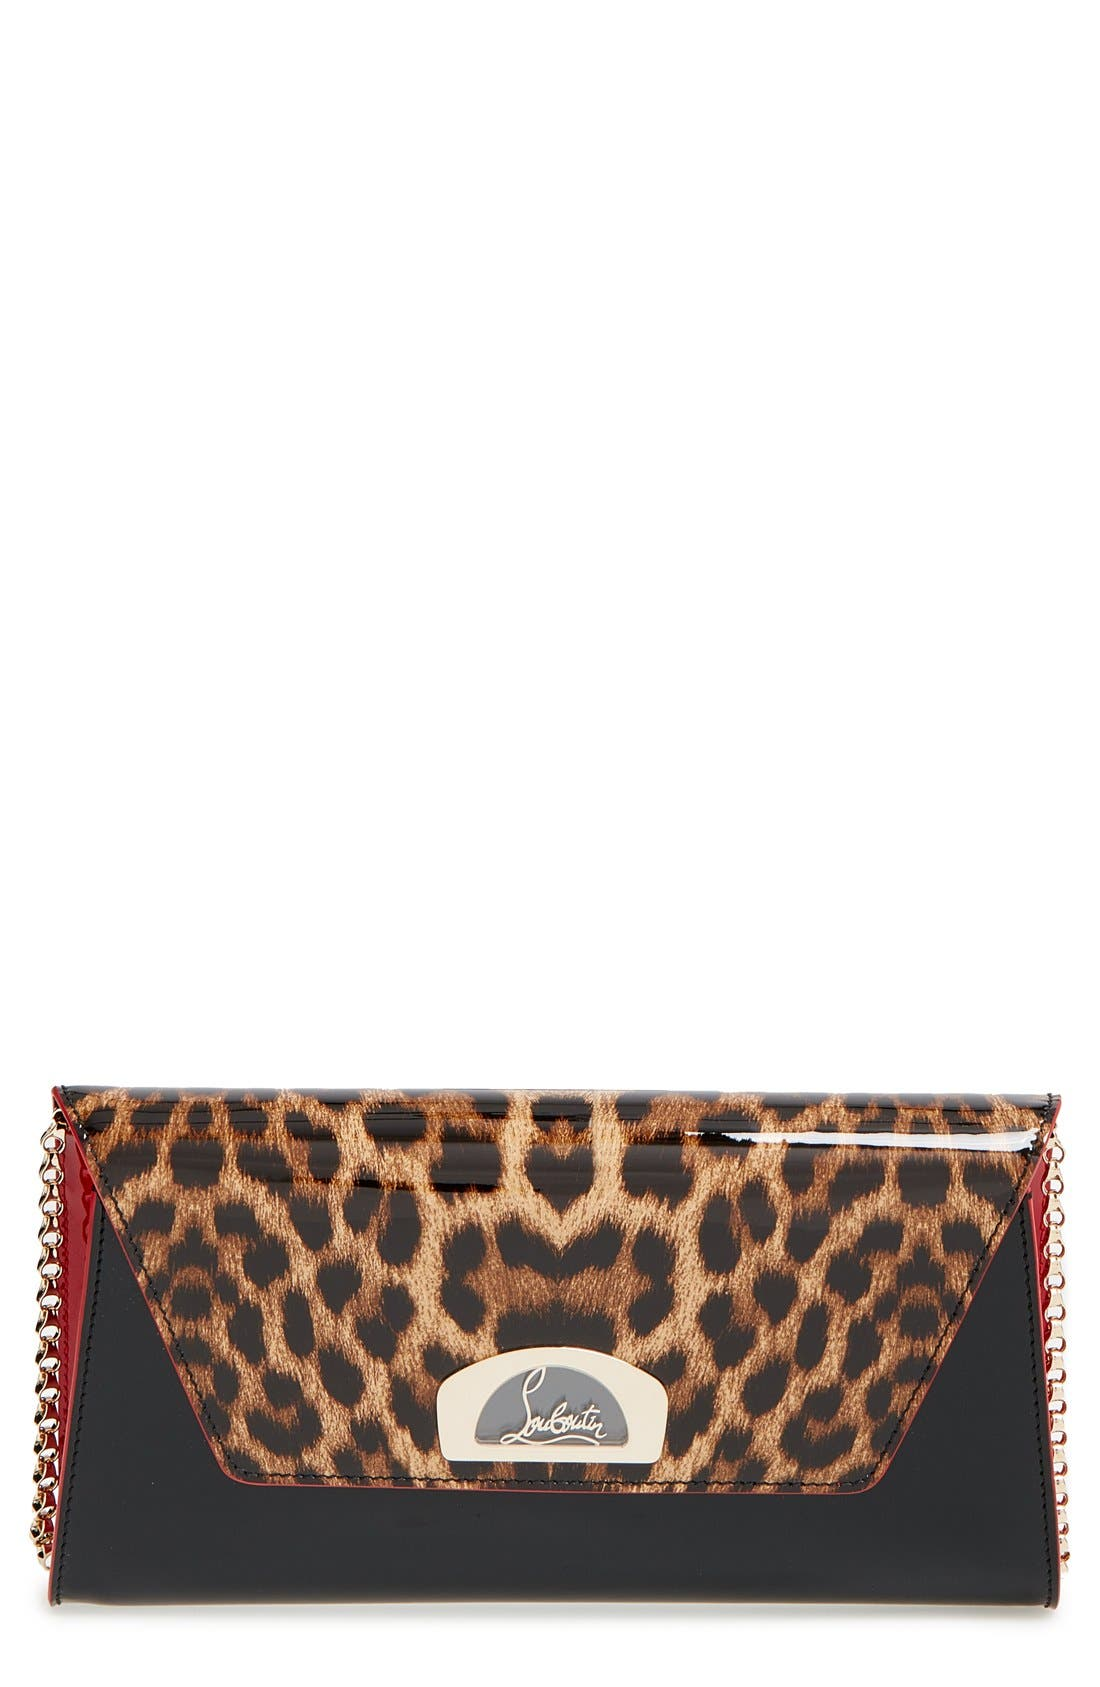 Alternate Image 1 Selected - Christian Louboutin 'Vero Dodat' Patent Clutch